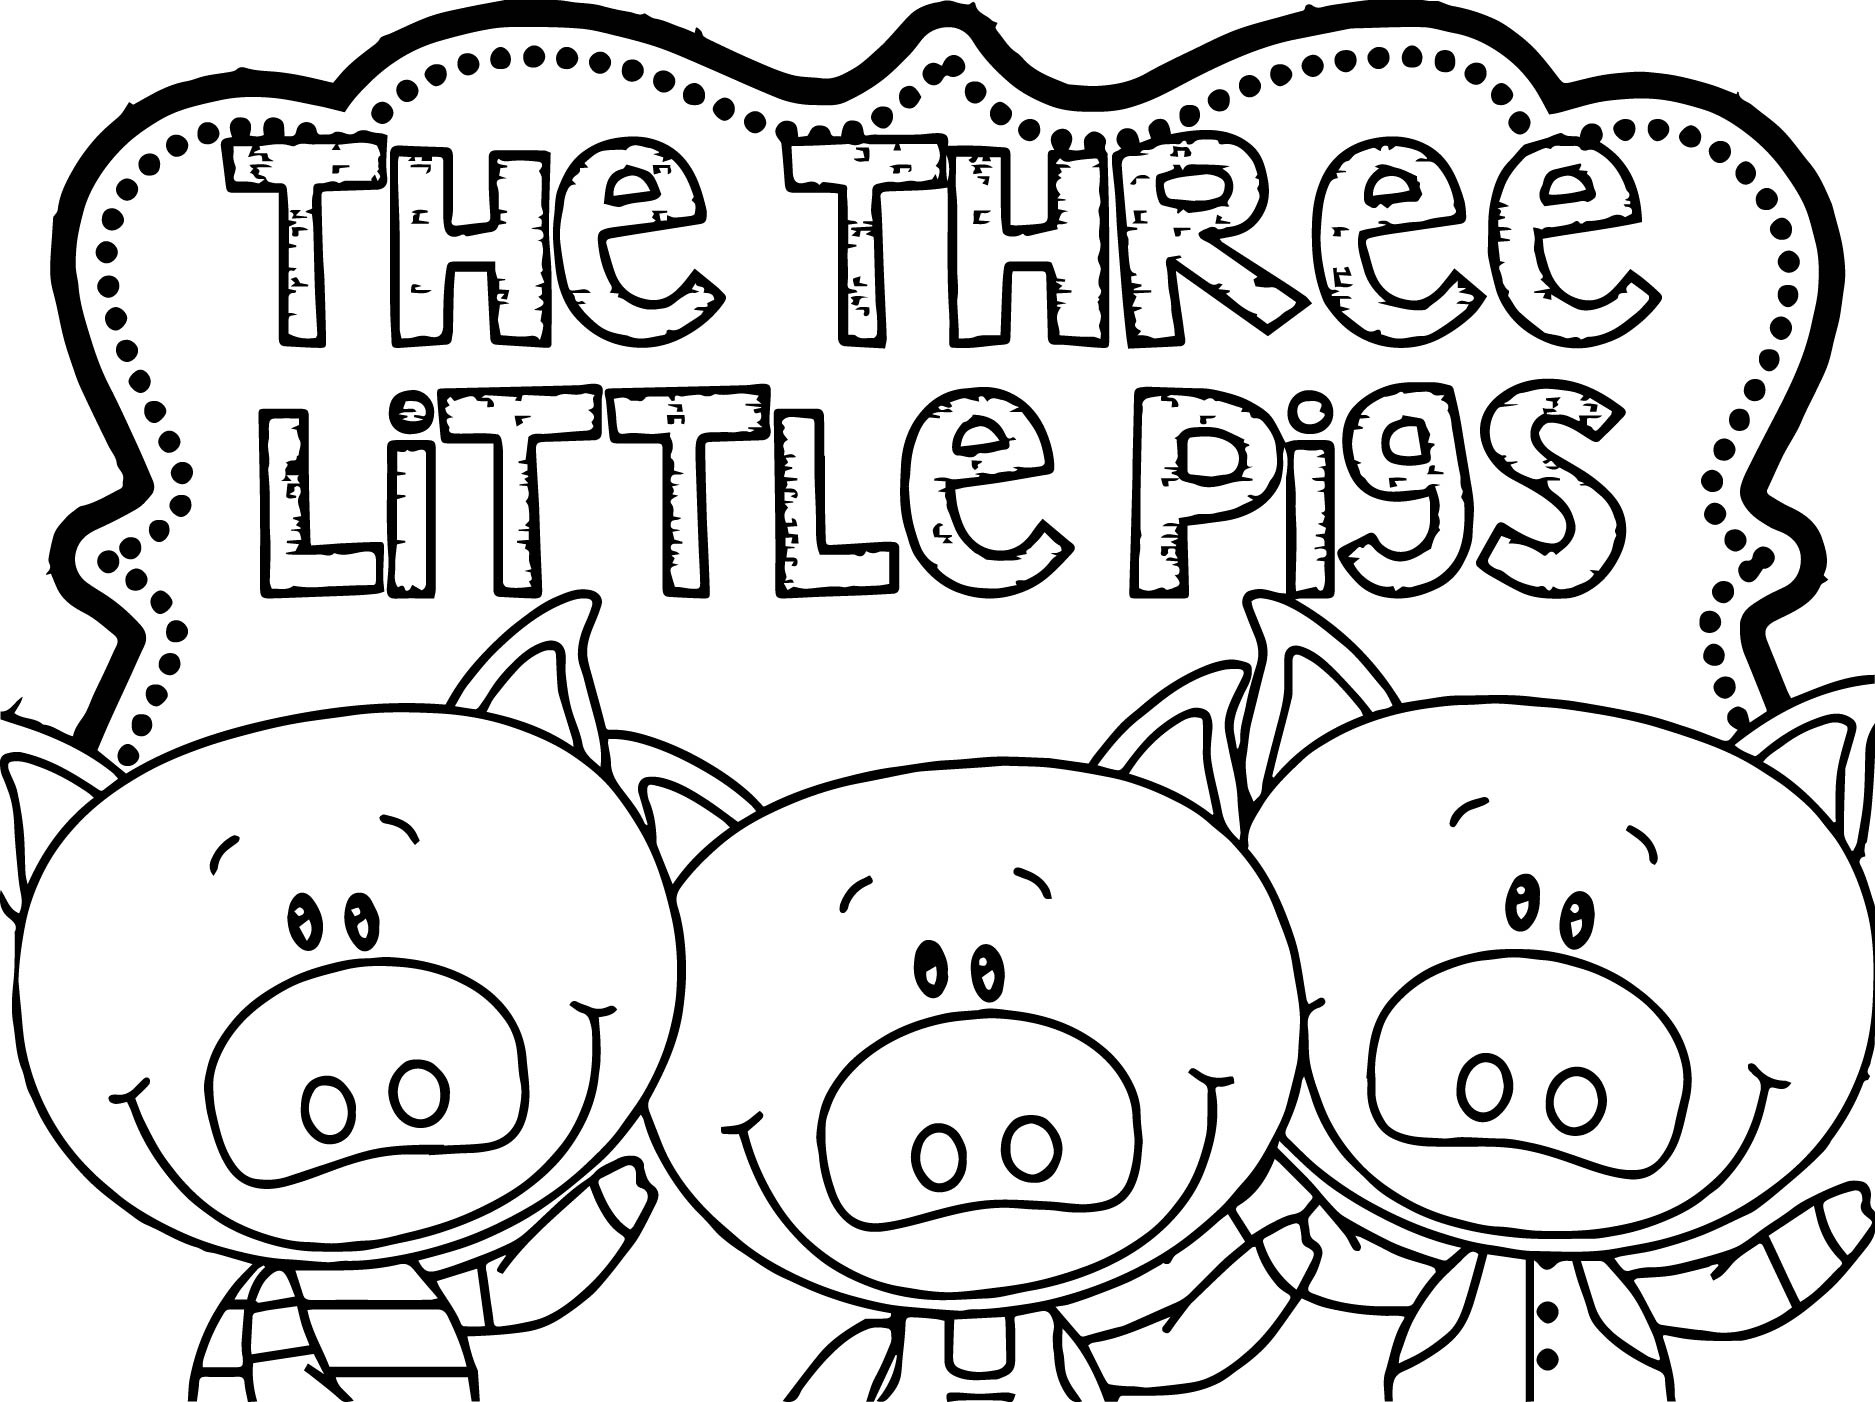 3 little pigs coloring page three little pigs wolf coloring pages food ideas 3 little pigs coloring page